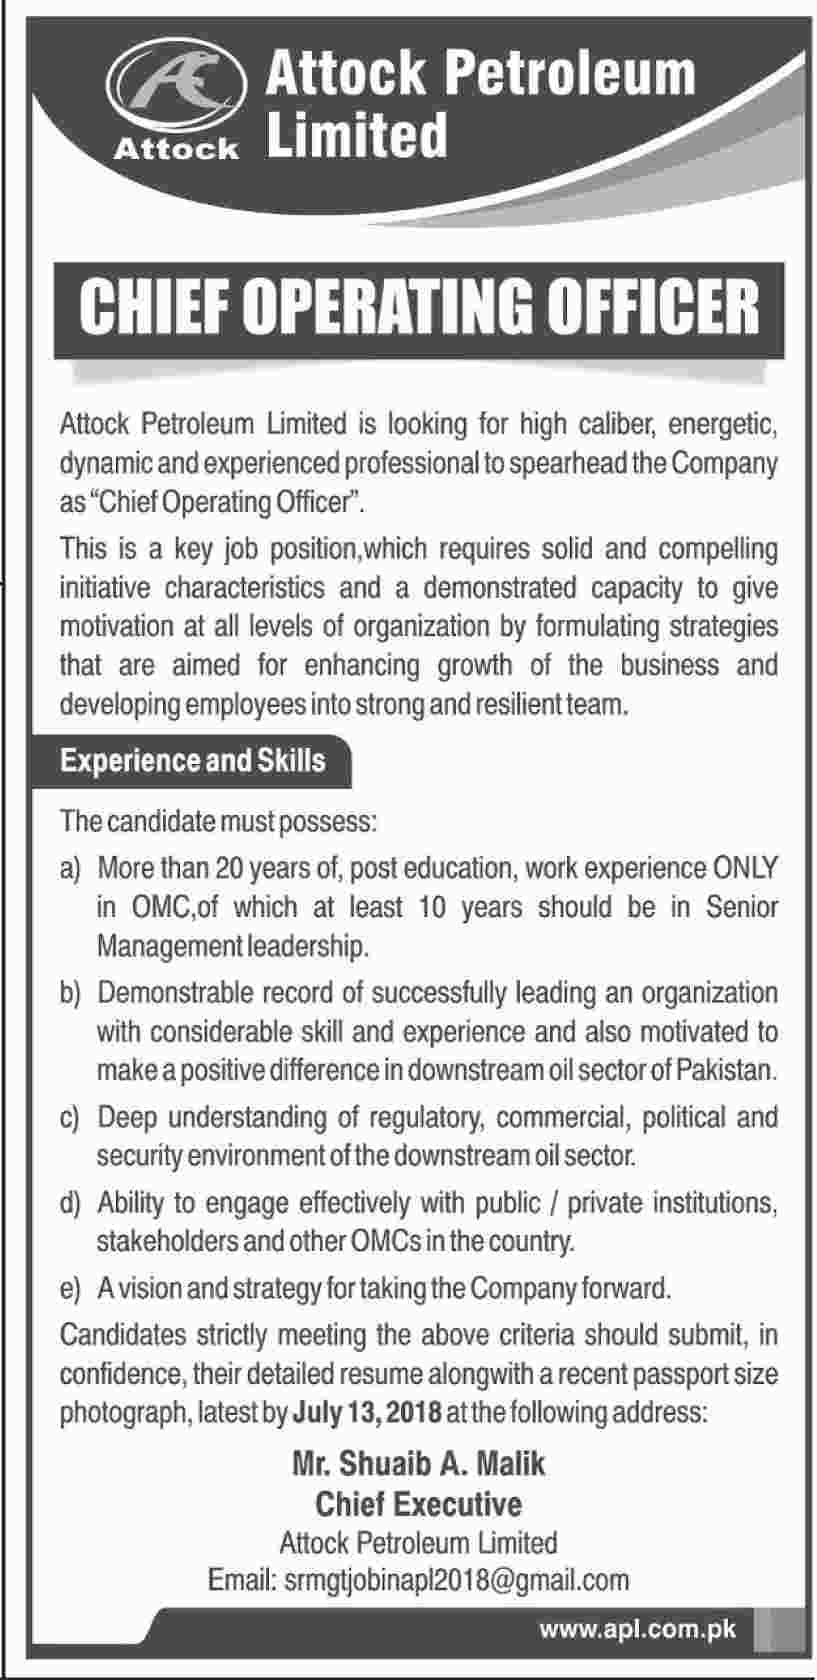 Attock petroleum ltd apl jobs 2018 for chief operating officer on 29 june 2018 paperpk jobs - Chief operating officer jobs ...